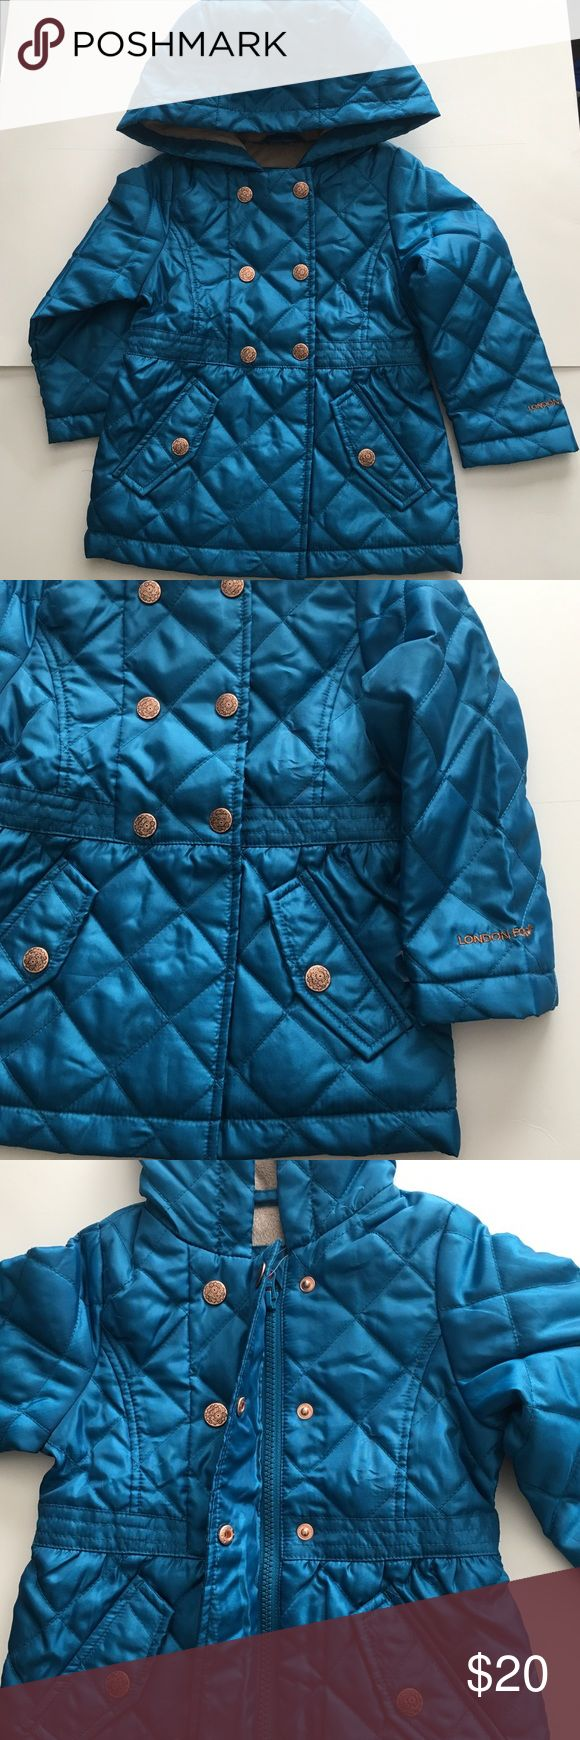 LONDON FOG Girls Hooded JACKET LONDON FOG Girls Hooded JACKET  Super soft fleece Lined / 2 snap button pockets / Snap button & zip closure   Color: Turquoise  Shell / Lining/ Padding: 100% Polyester London Fog Jackets & Coats